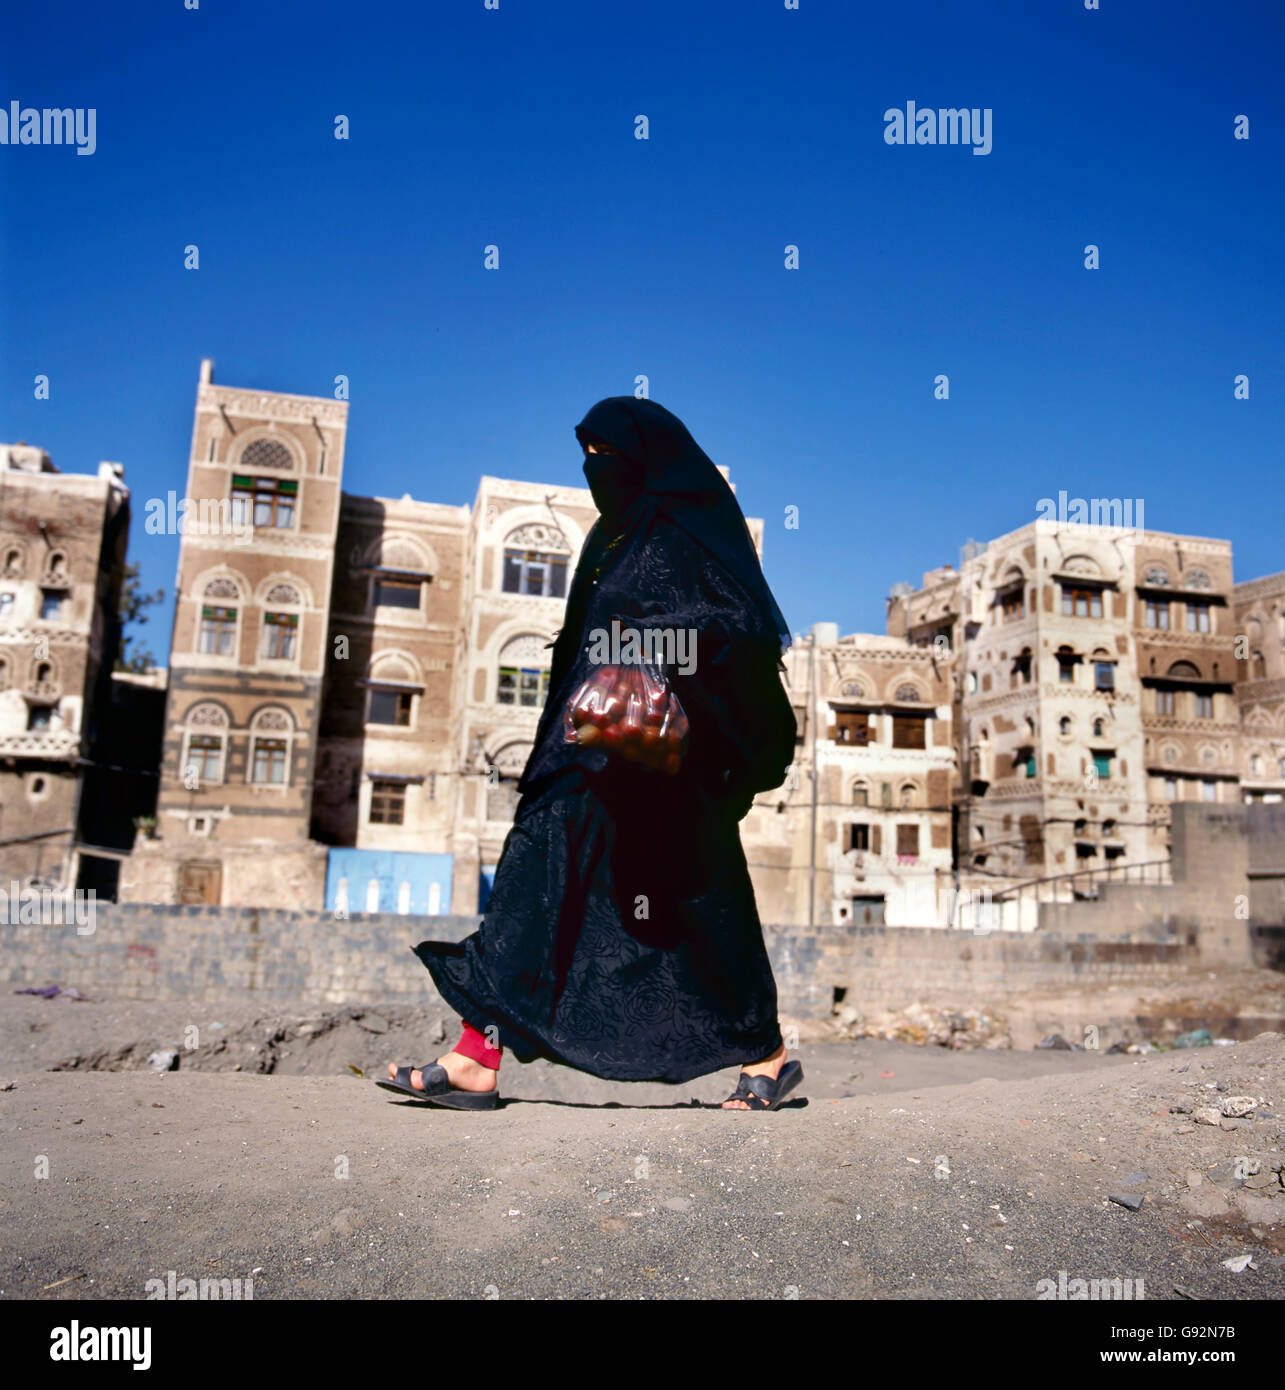 Veiled Muslim woman walks on  Sana'a street, Yemen. At background typical Yemen houses. - Stock Image